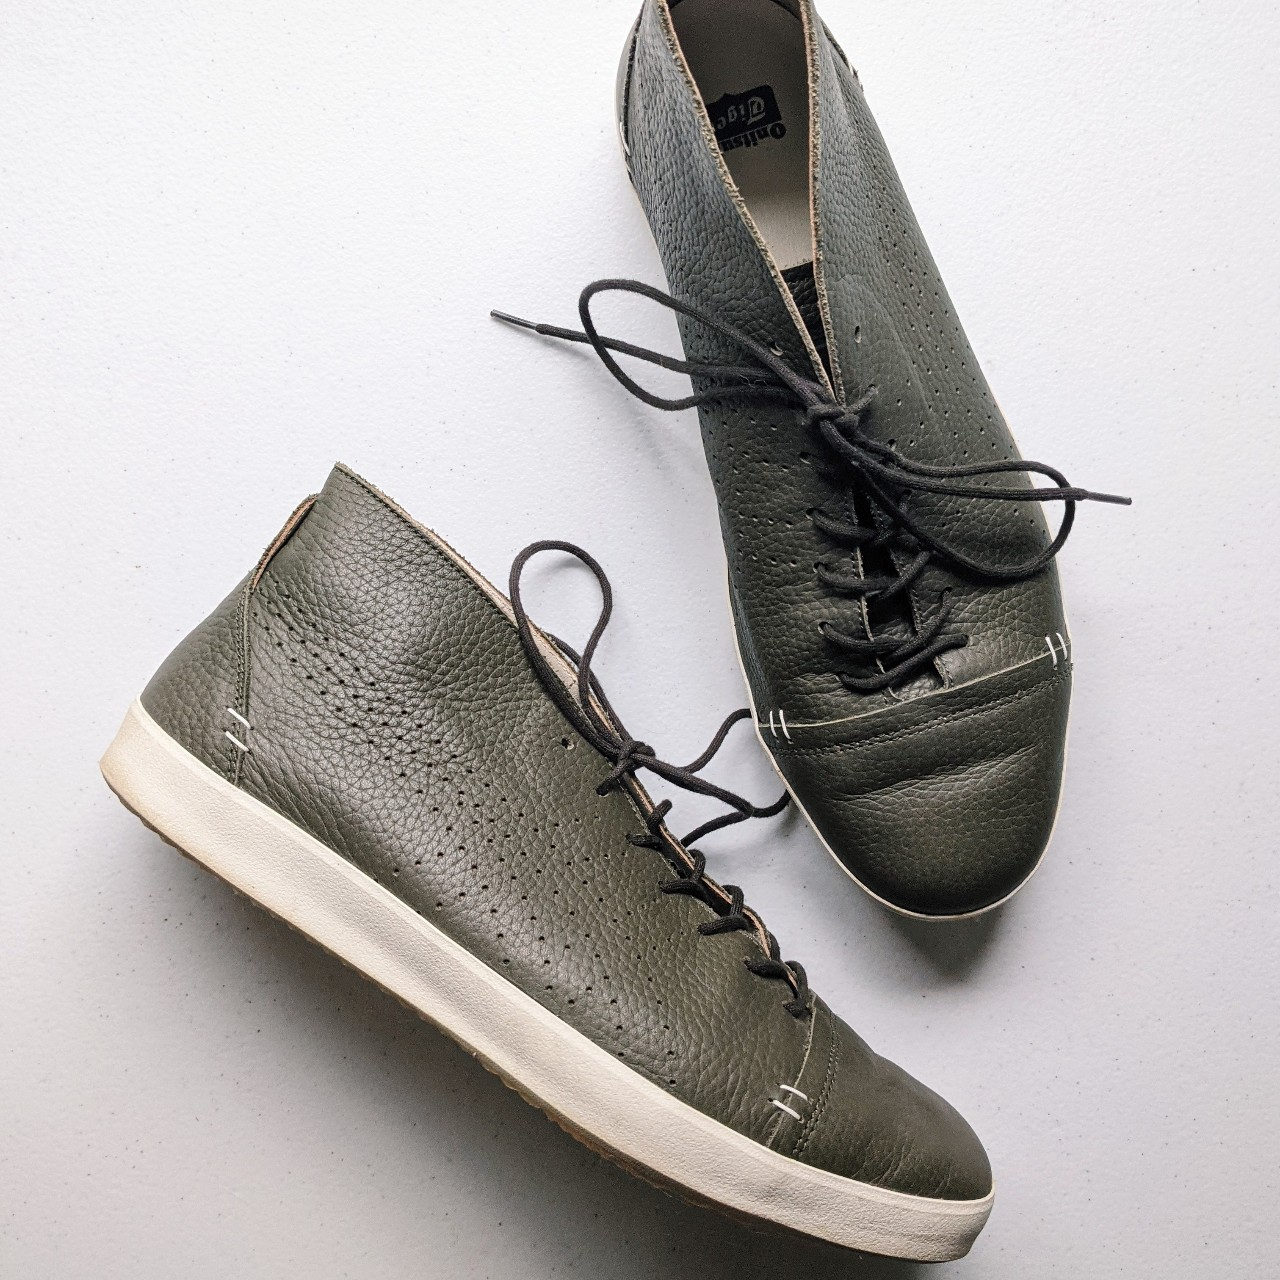 Product Image 1 - Onitsuka Tiger Colesne shoes⚡  Olive green